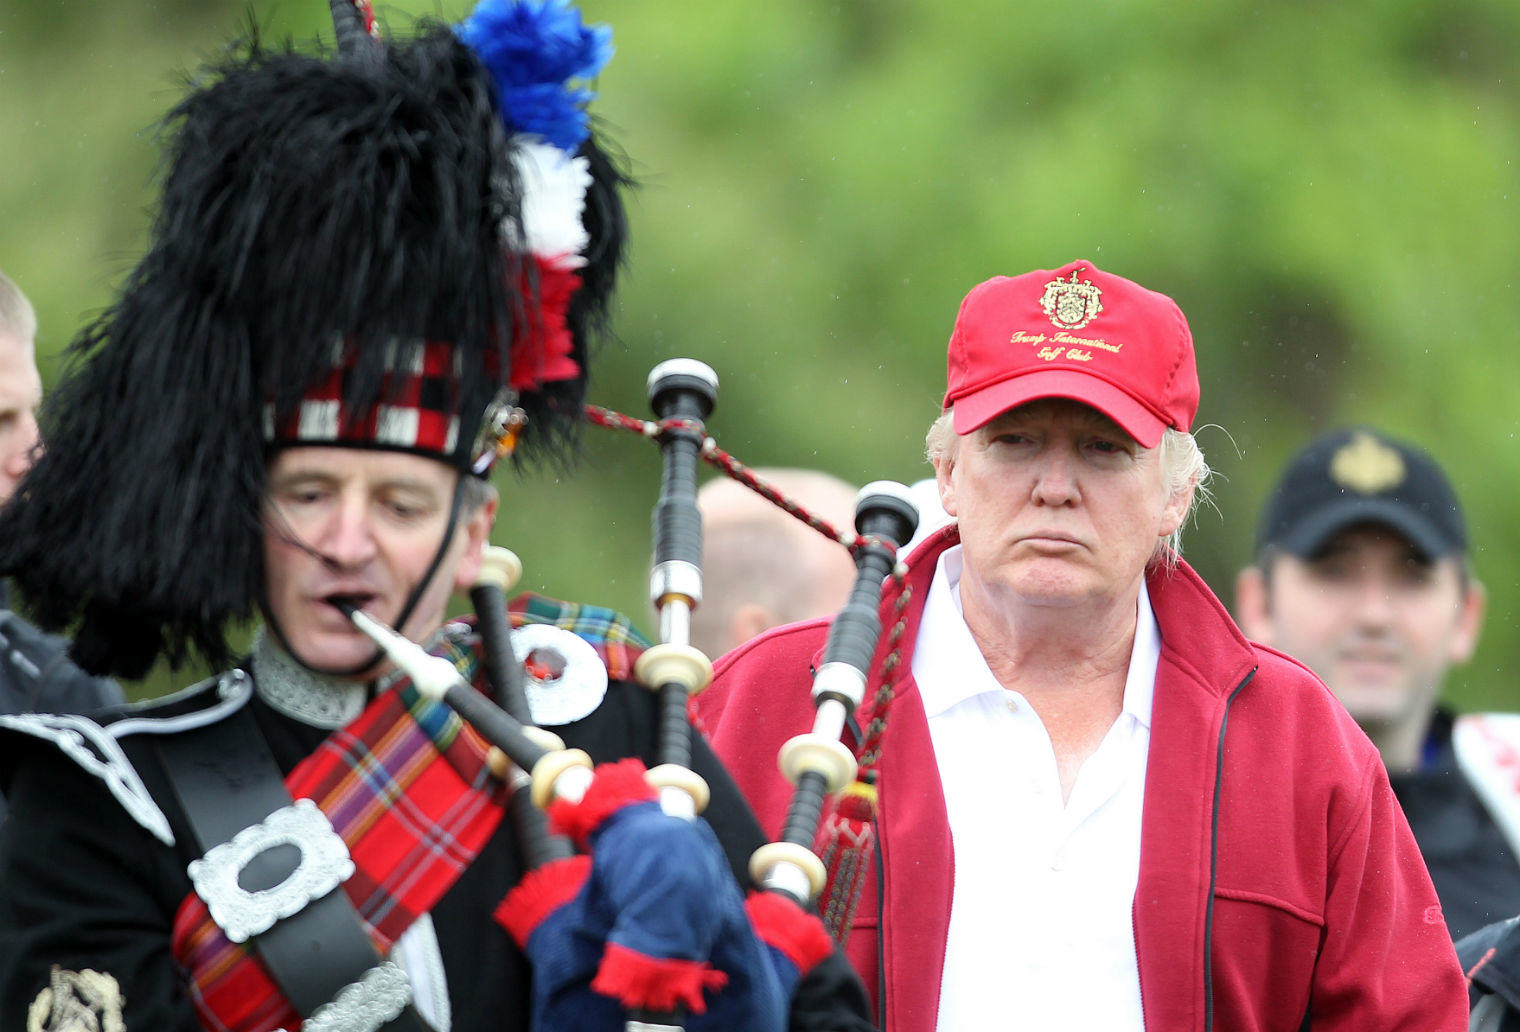 A Lot Of People In Scotland Want Donald Trump Banned From The UK donald trump scotland 3